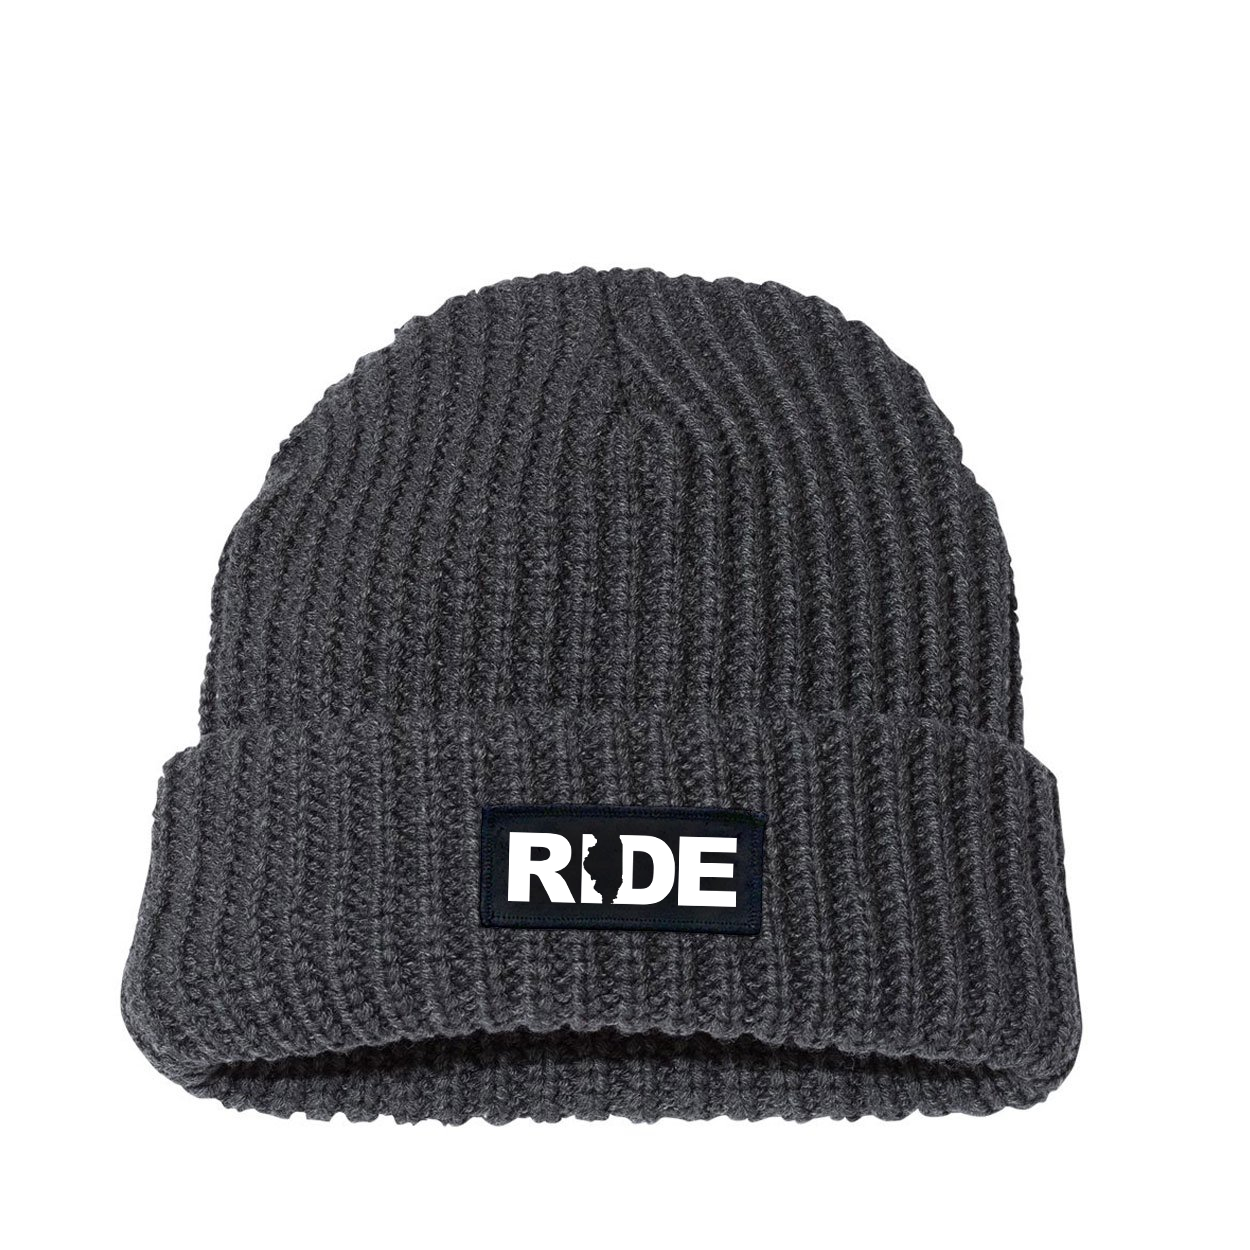 Ride Illinois Night Out Woven Patch Roll Up Jumbo Chunky Knit Beanie Charcoal (White Logo)